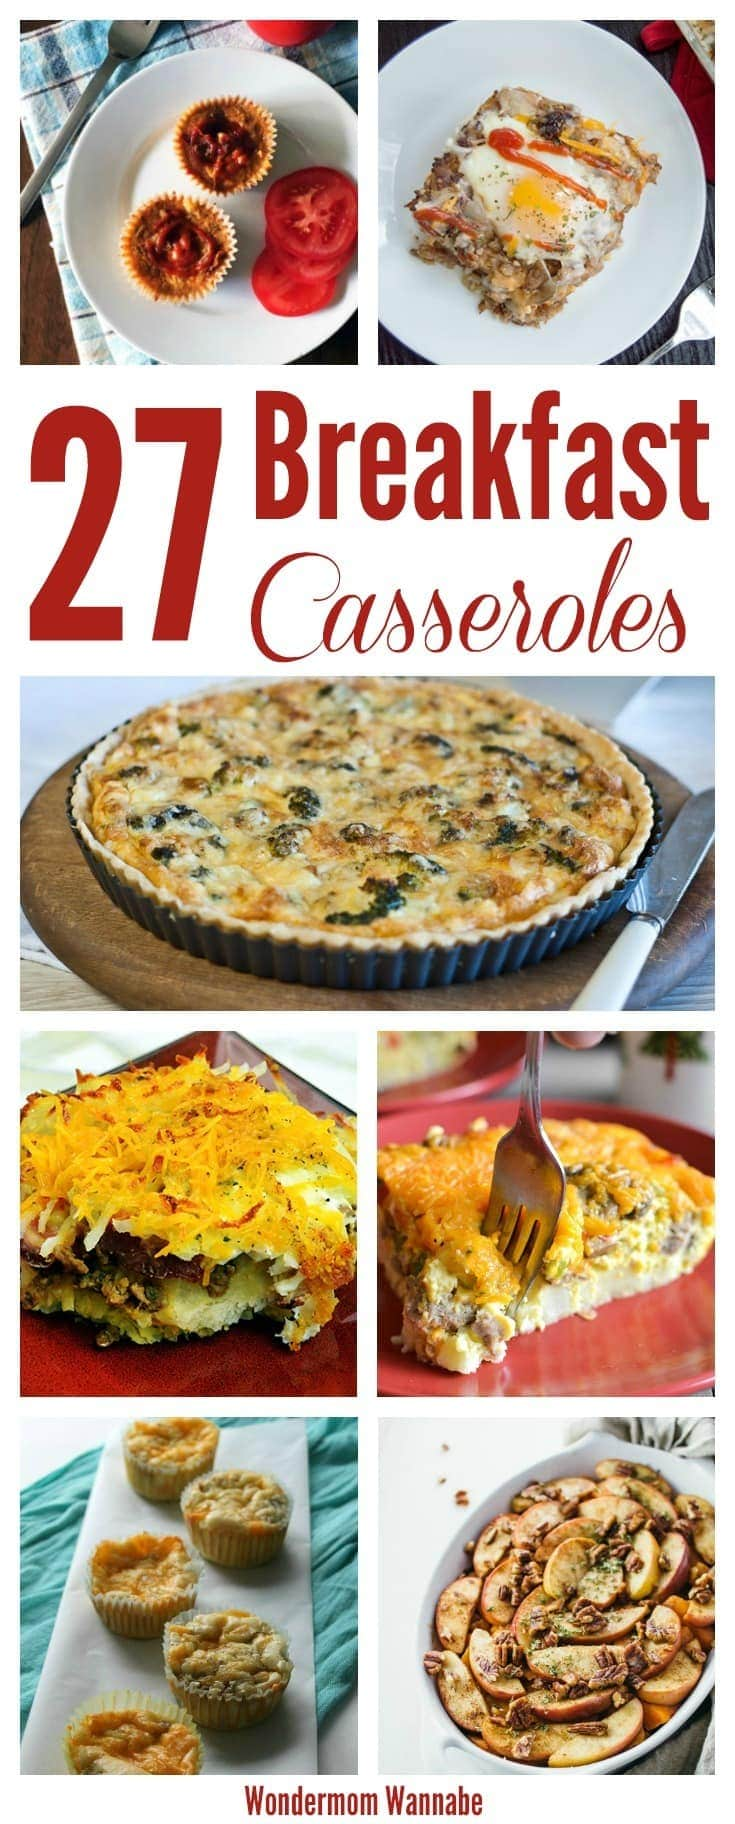 This is an awesome collection of breakfast casserole recipes for everyone including meat and potatoes lovers to vegetarians, sugar lovers, and gluten-free eaters.